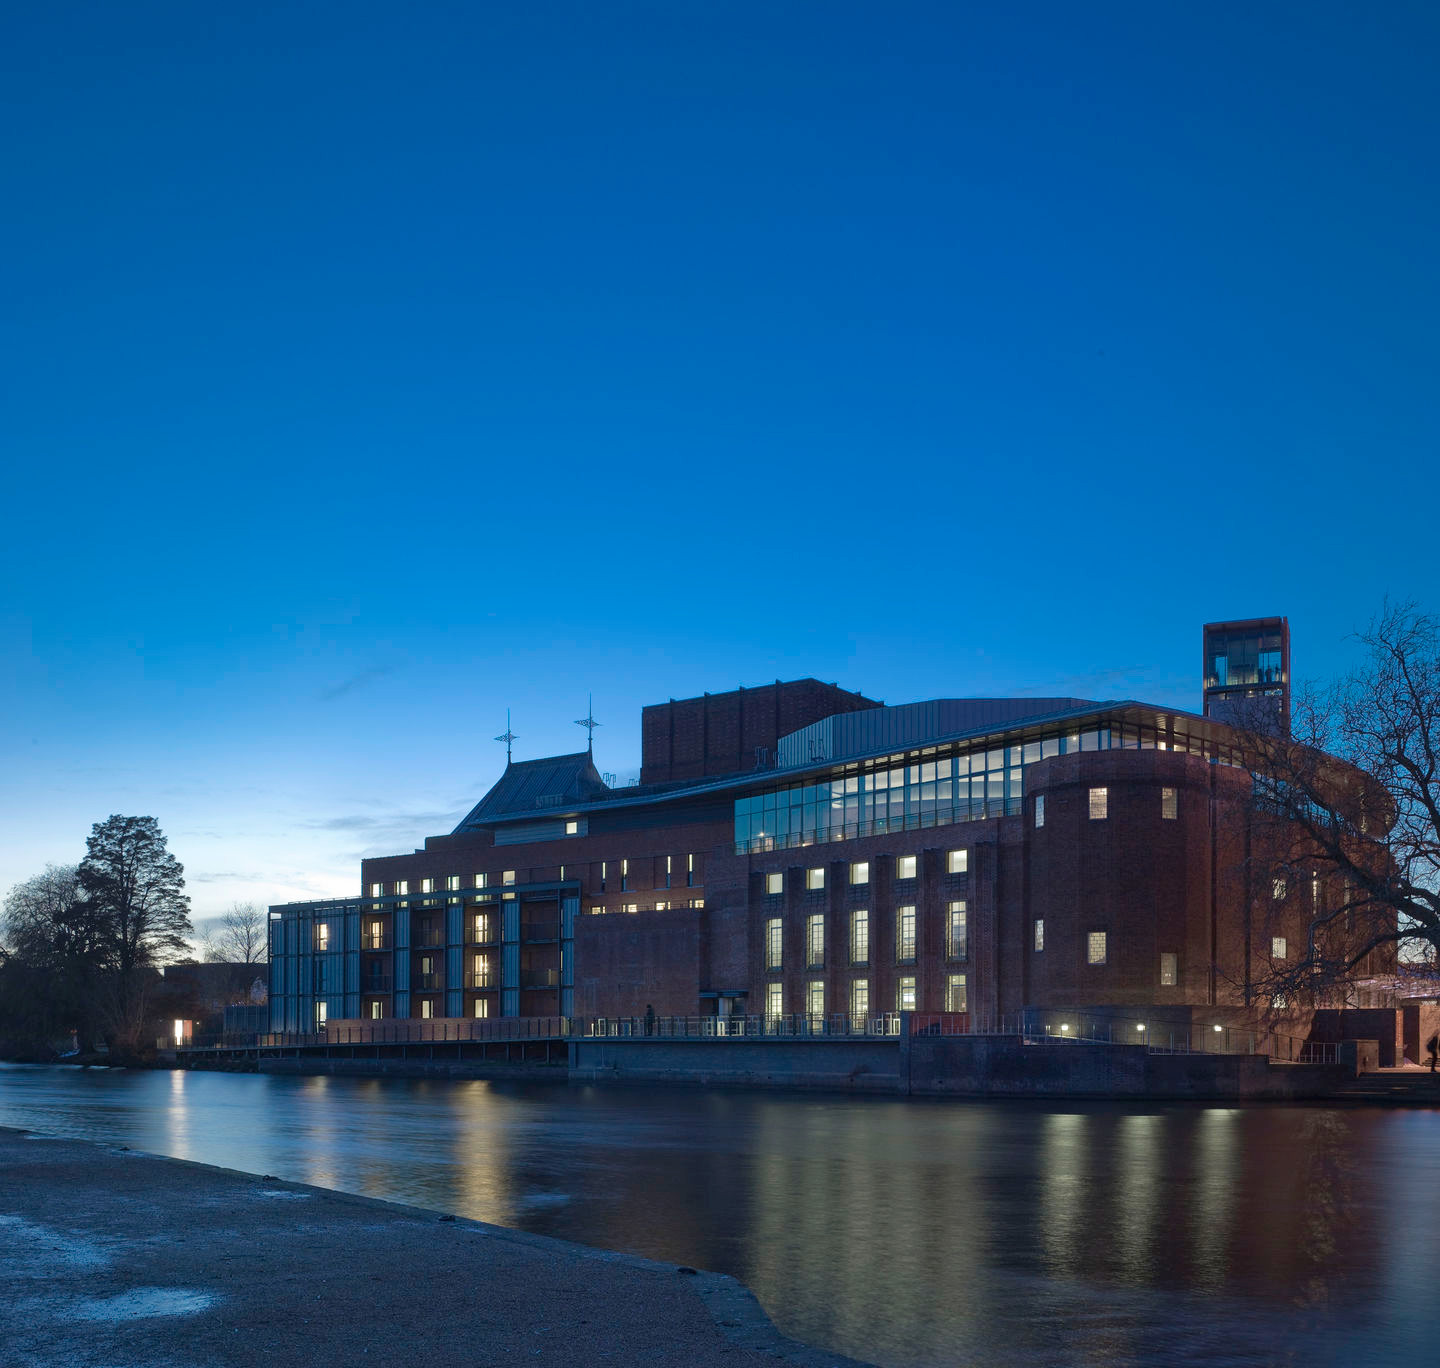 The Royal Shakespeare Theatre exterior in the evening